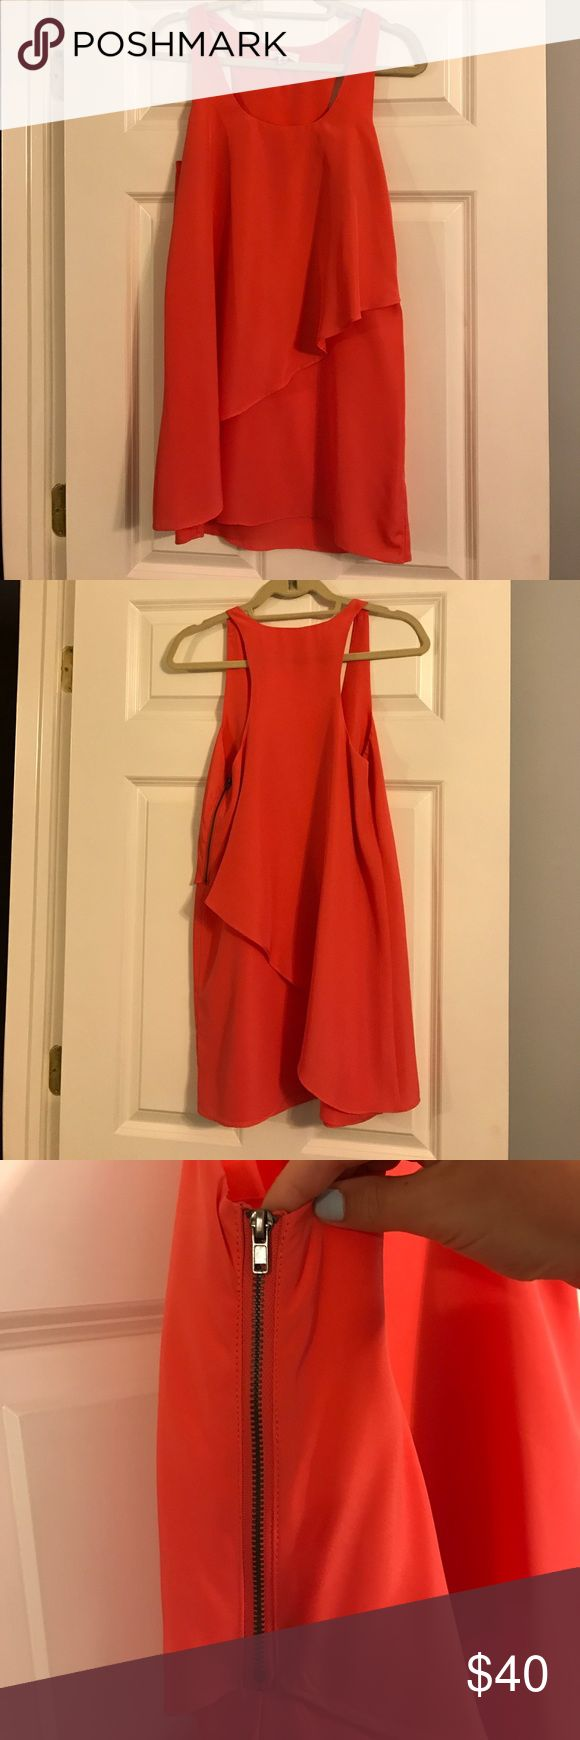 Urban Outfitter Coral Sundress Adorable coral sundress purchased at Urban Outfitters. 100% polyester. In great condition. Worn less than 5 times. Looks great for a summer party with sandals or wedges! silence + noise Dresses Mini